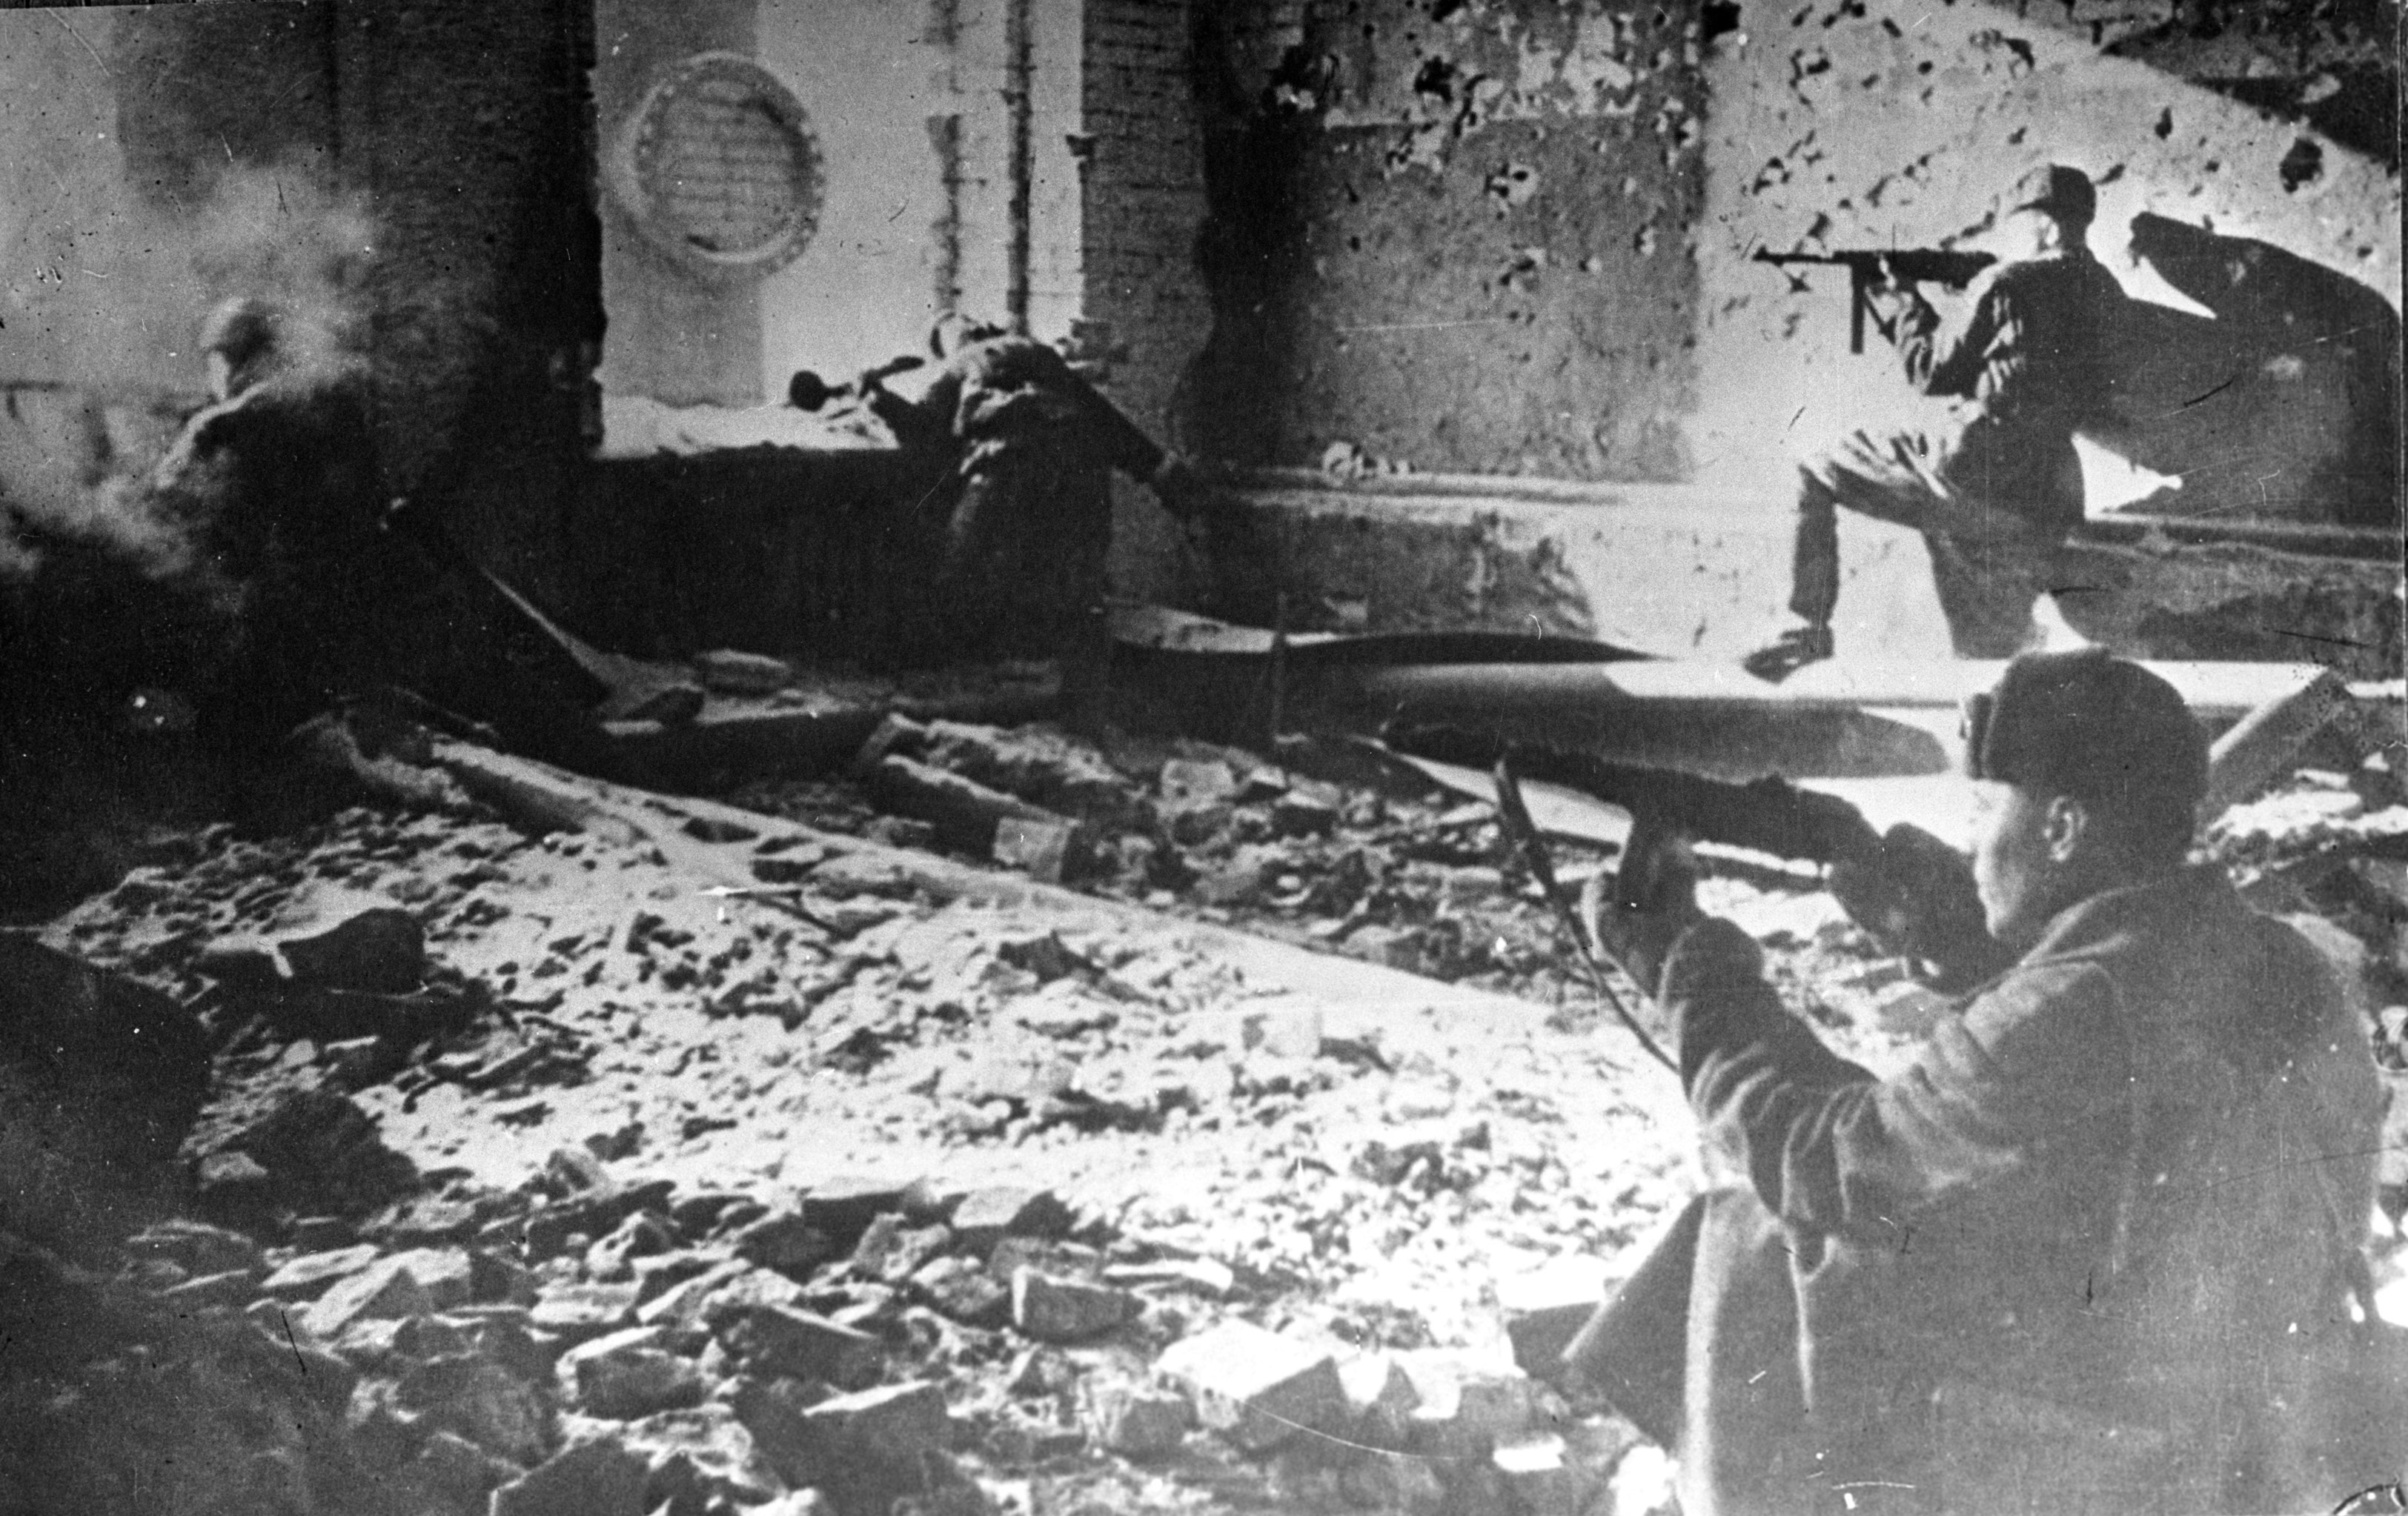 Soviet troops defend a house in Stalingrad